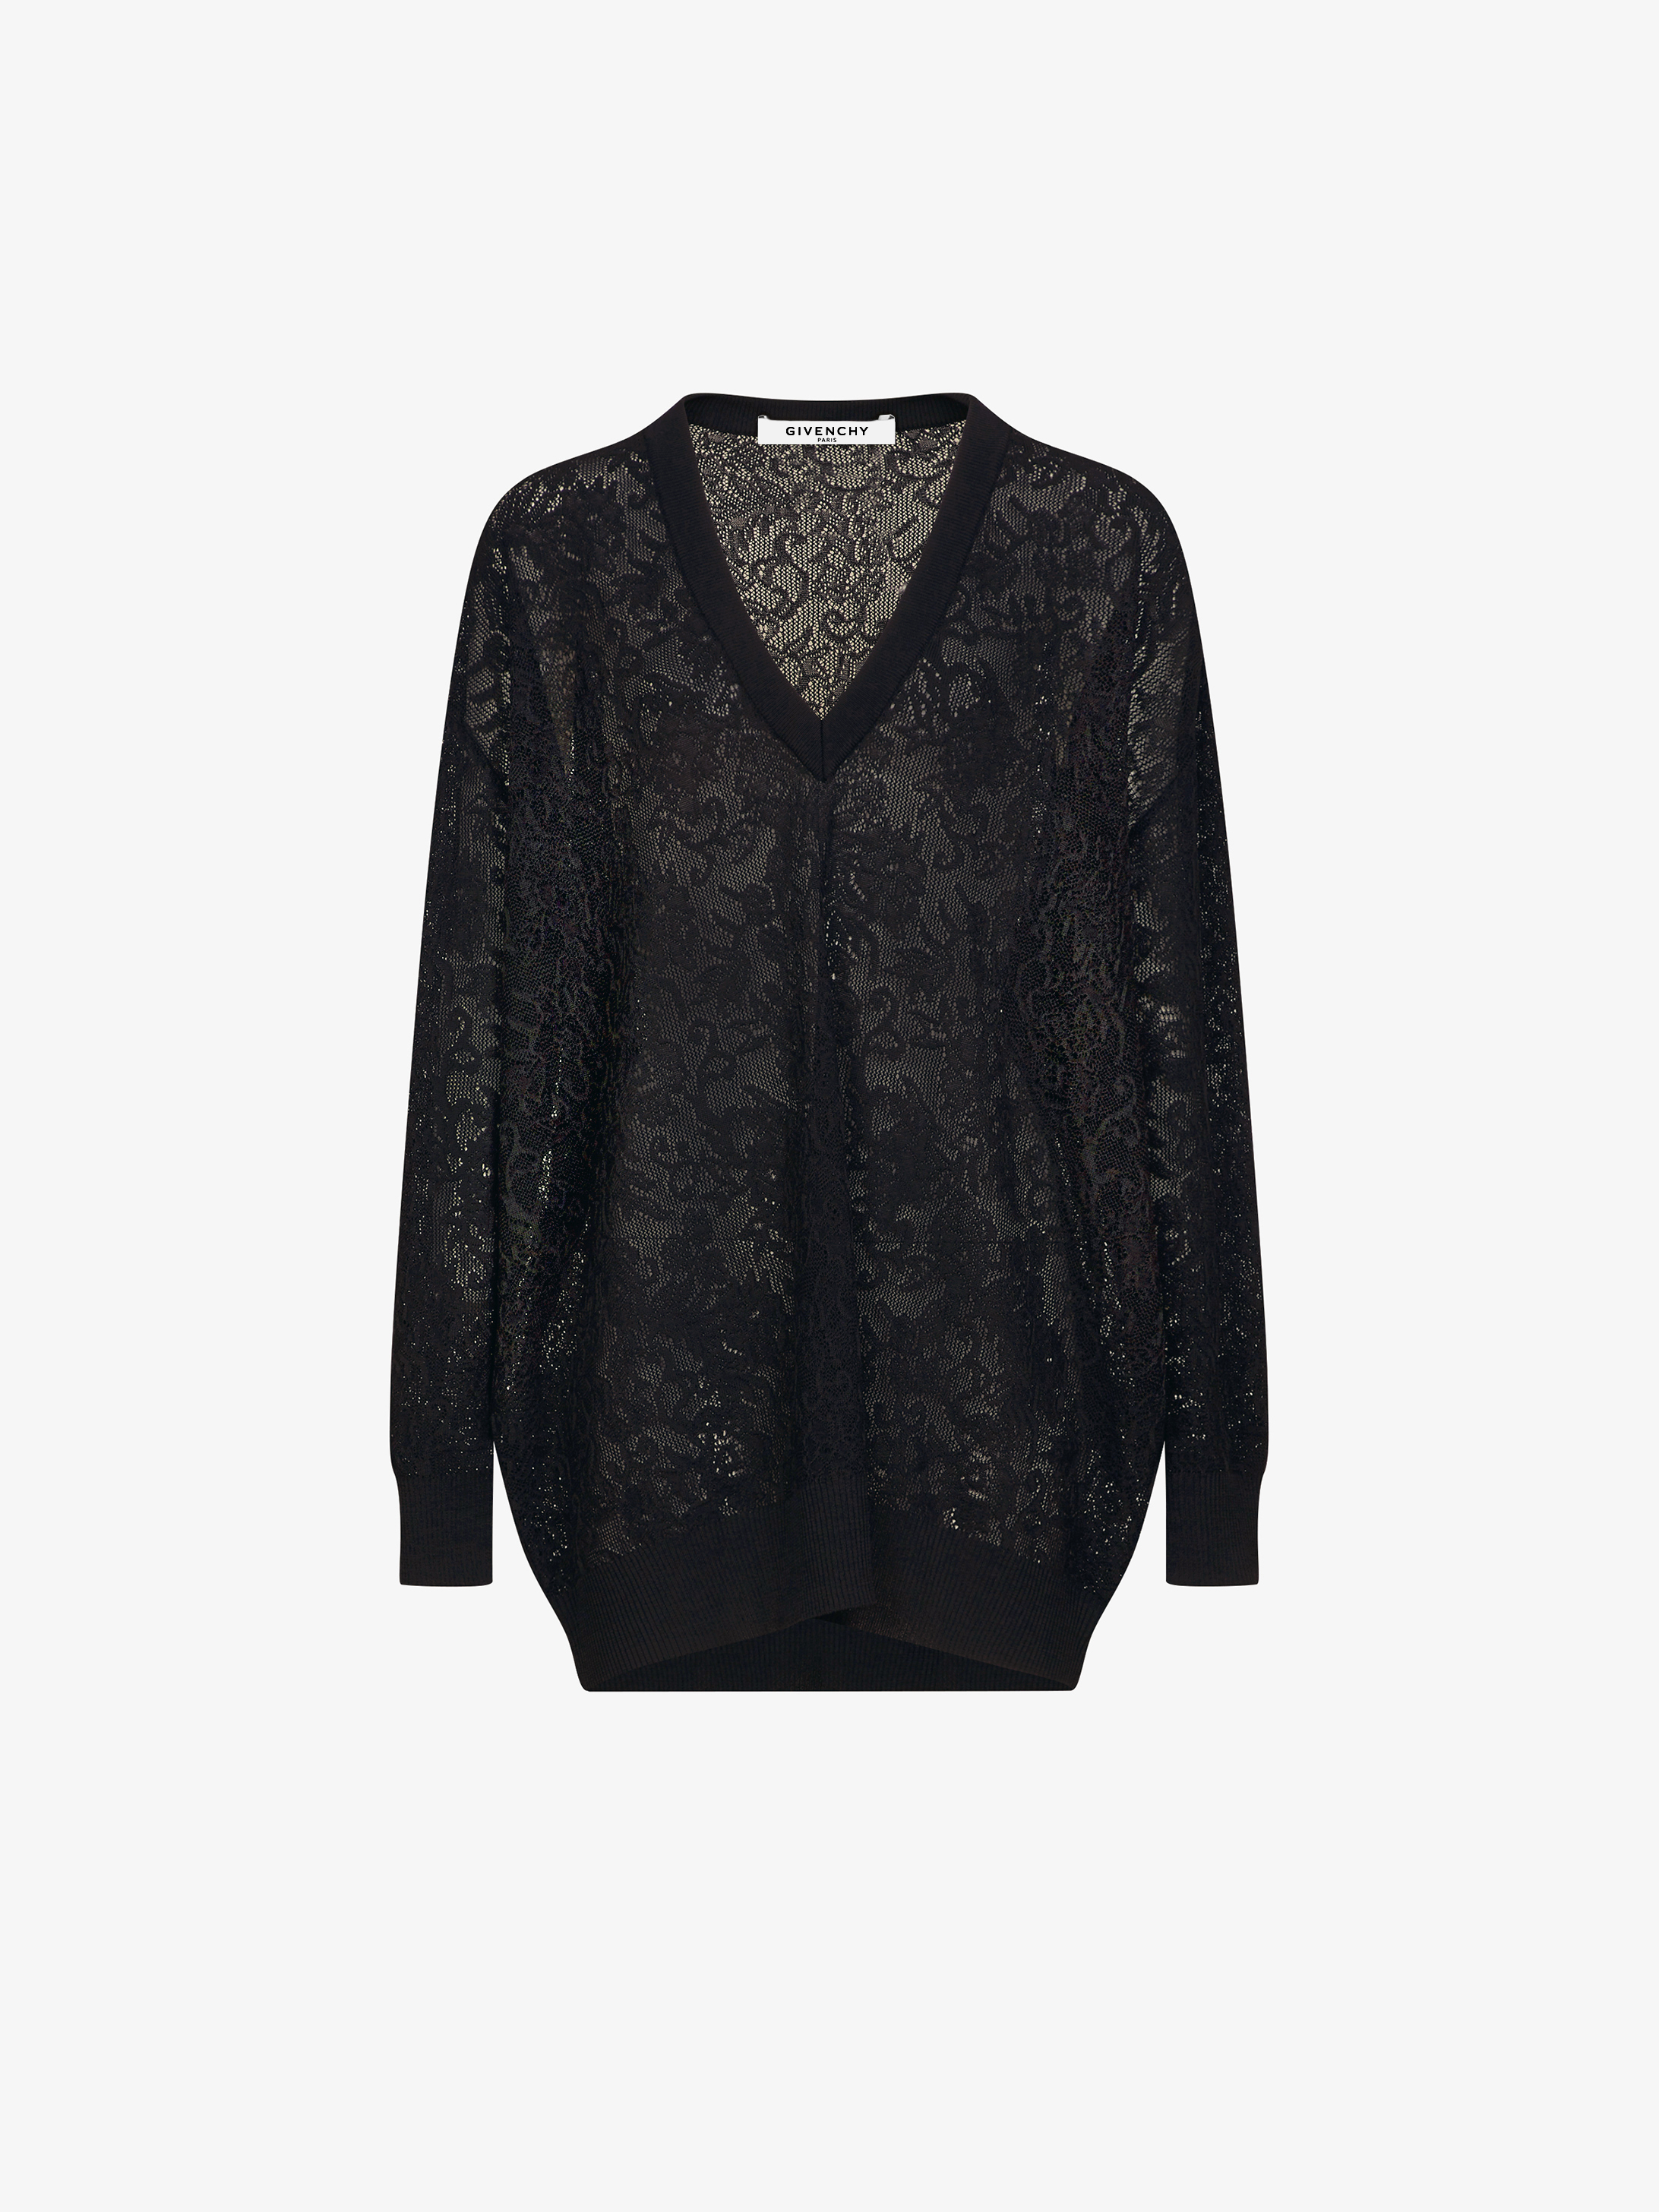 Oversized lace effect jumper